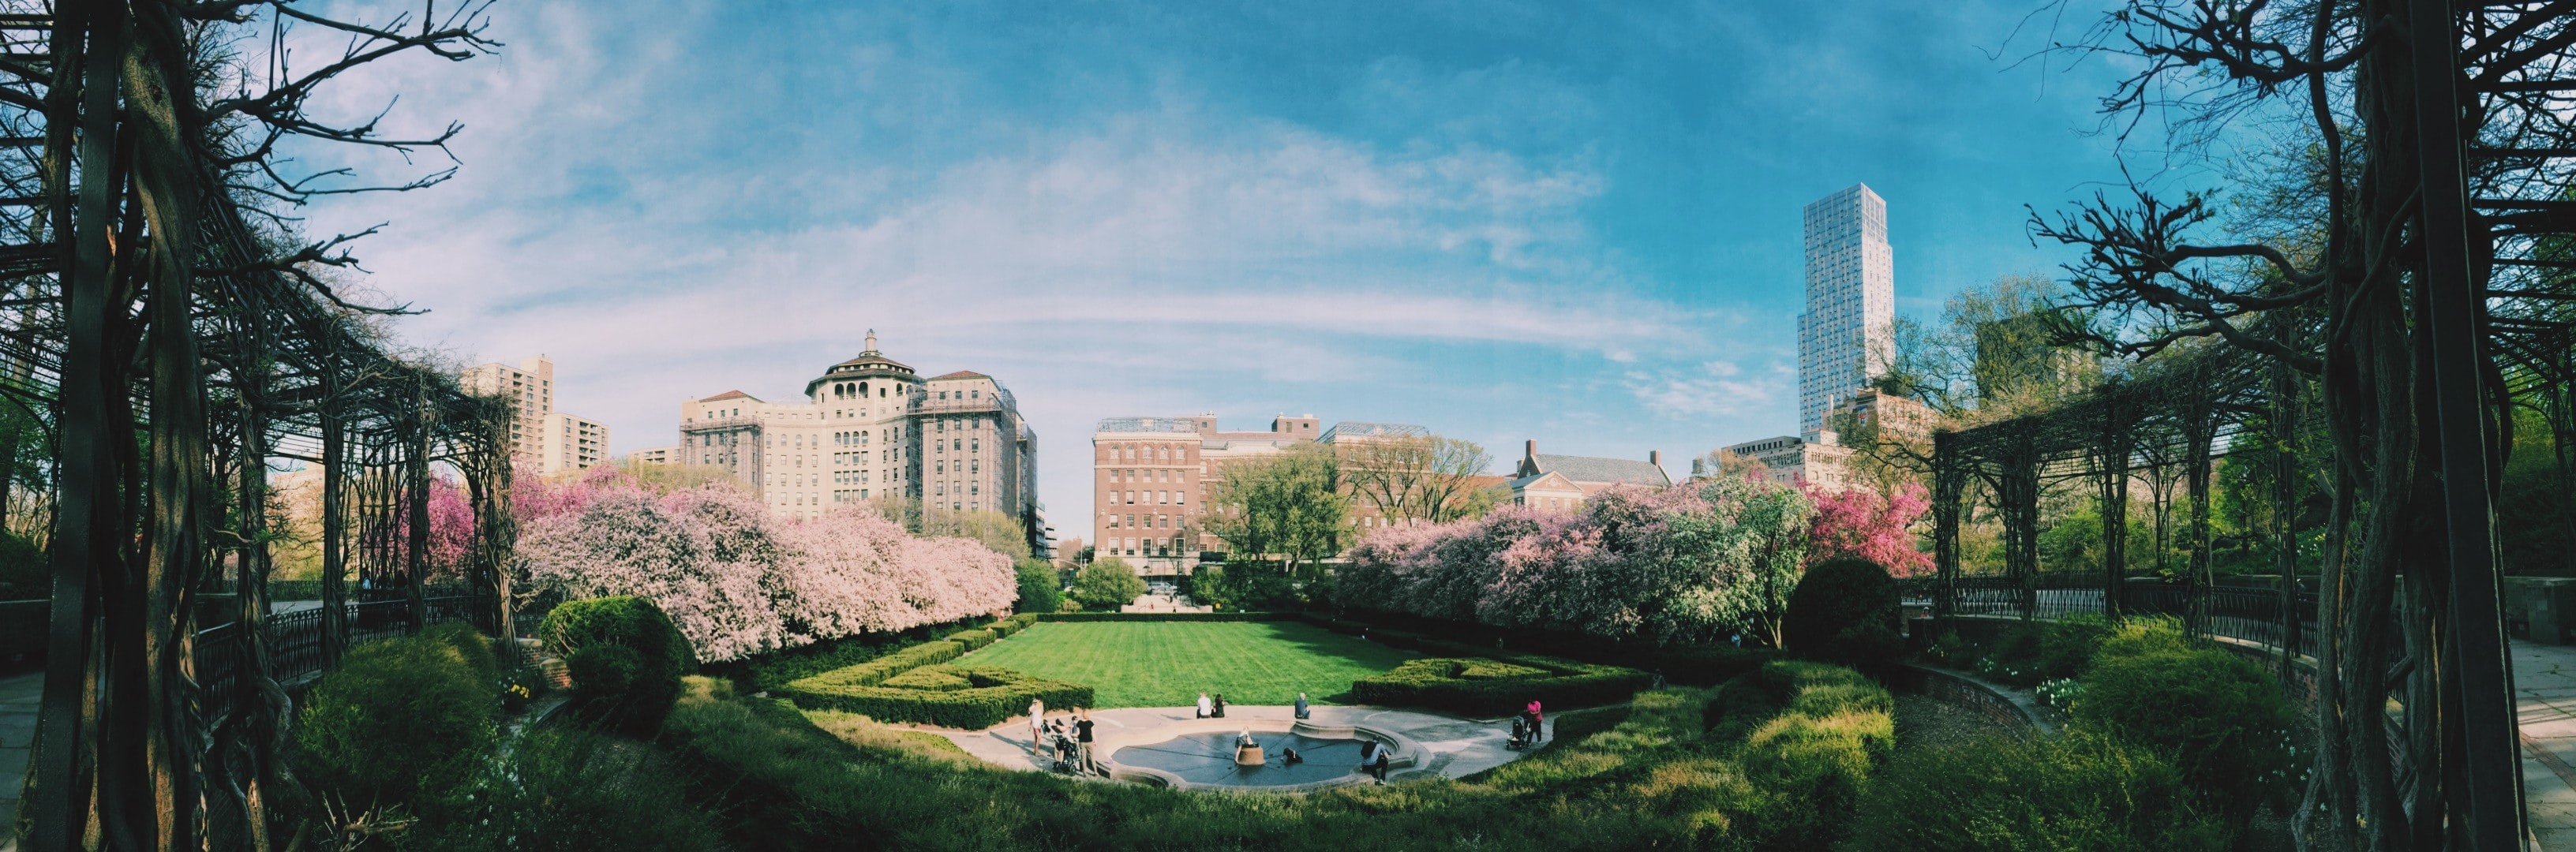 Panorama of the Conservatory Garden with pink bushes in Central Park, New York City